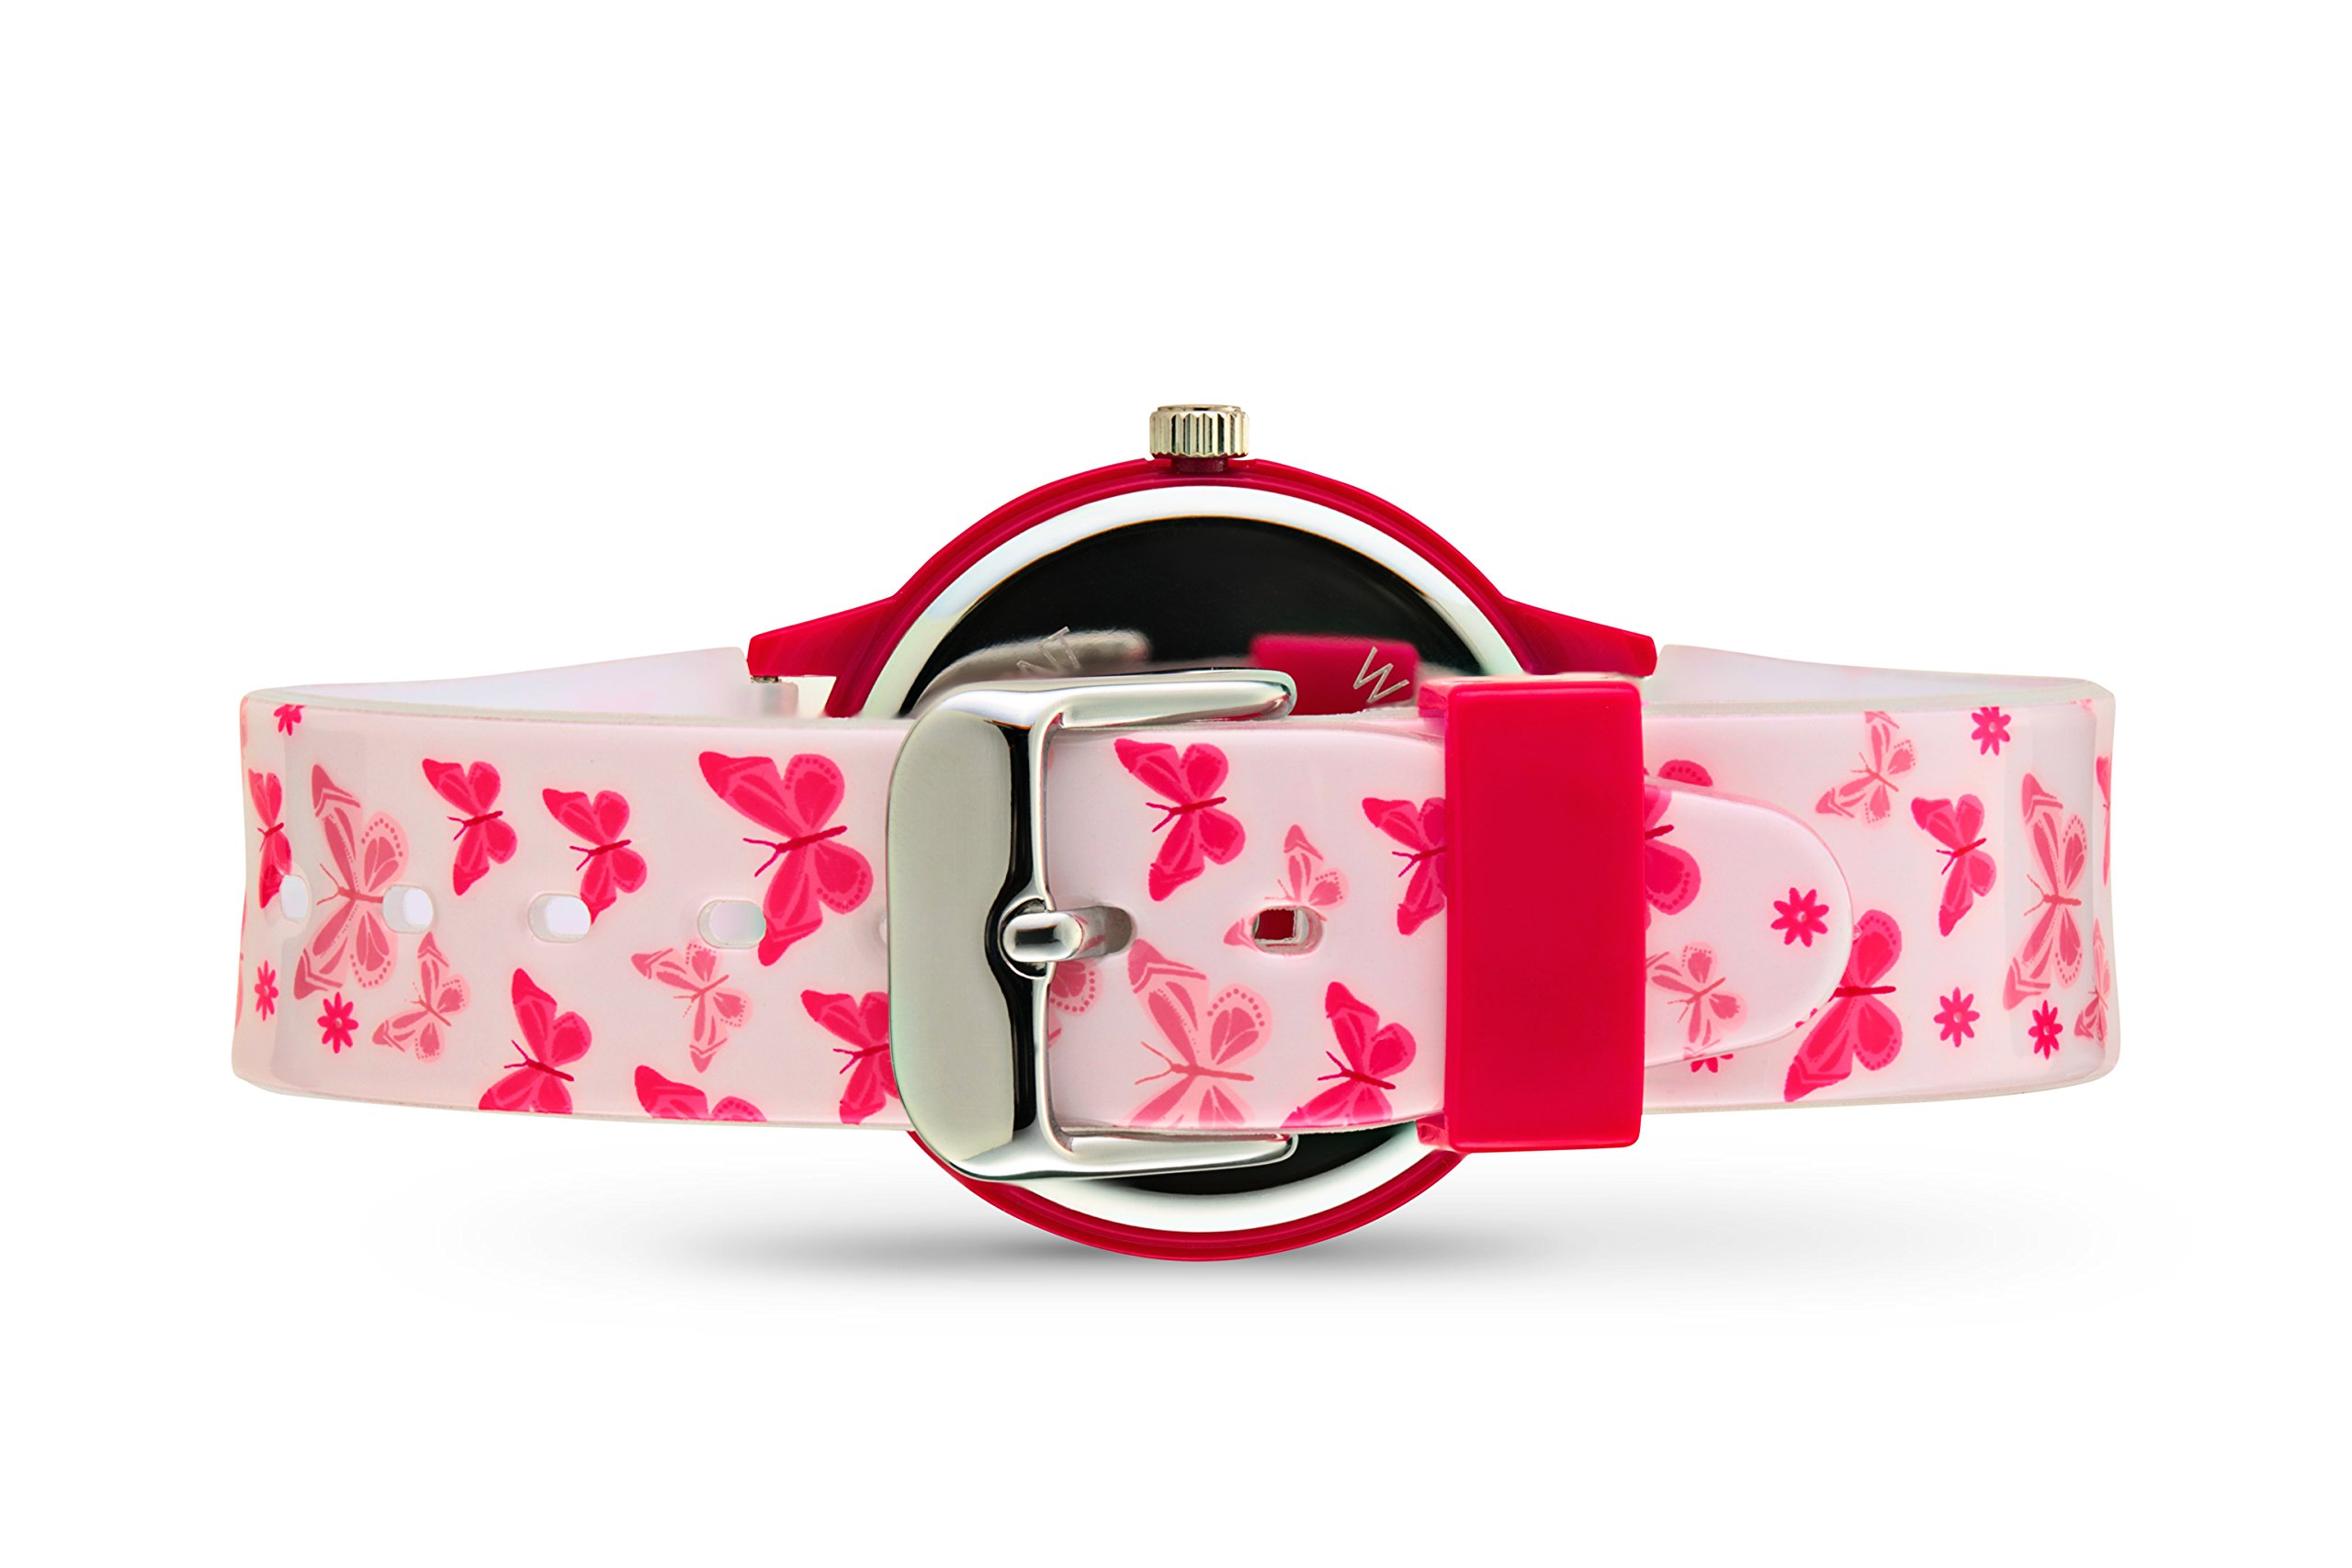 Ovvel Girls Watch - Pretty and Cute Kids Wrist with Teaching Analog Display Time Teacher - Japanese Quartz Movement - Pink Butterfly Design by Ovvel (Image #2)